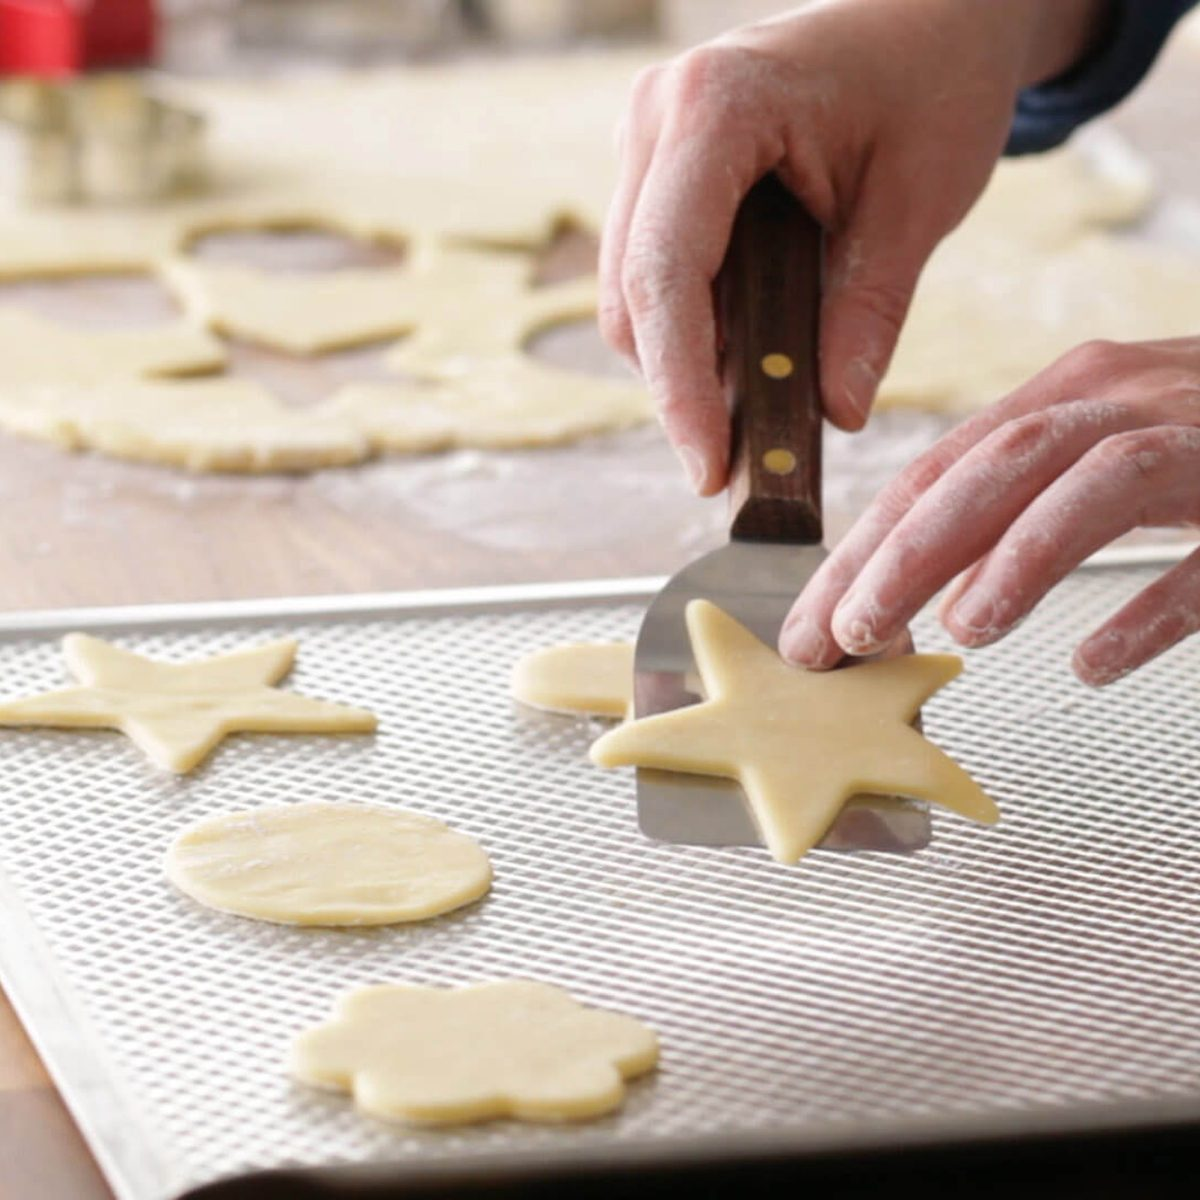 Person using a spatula to pick up sugar cookies